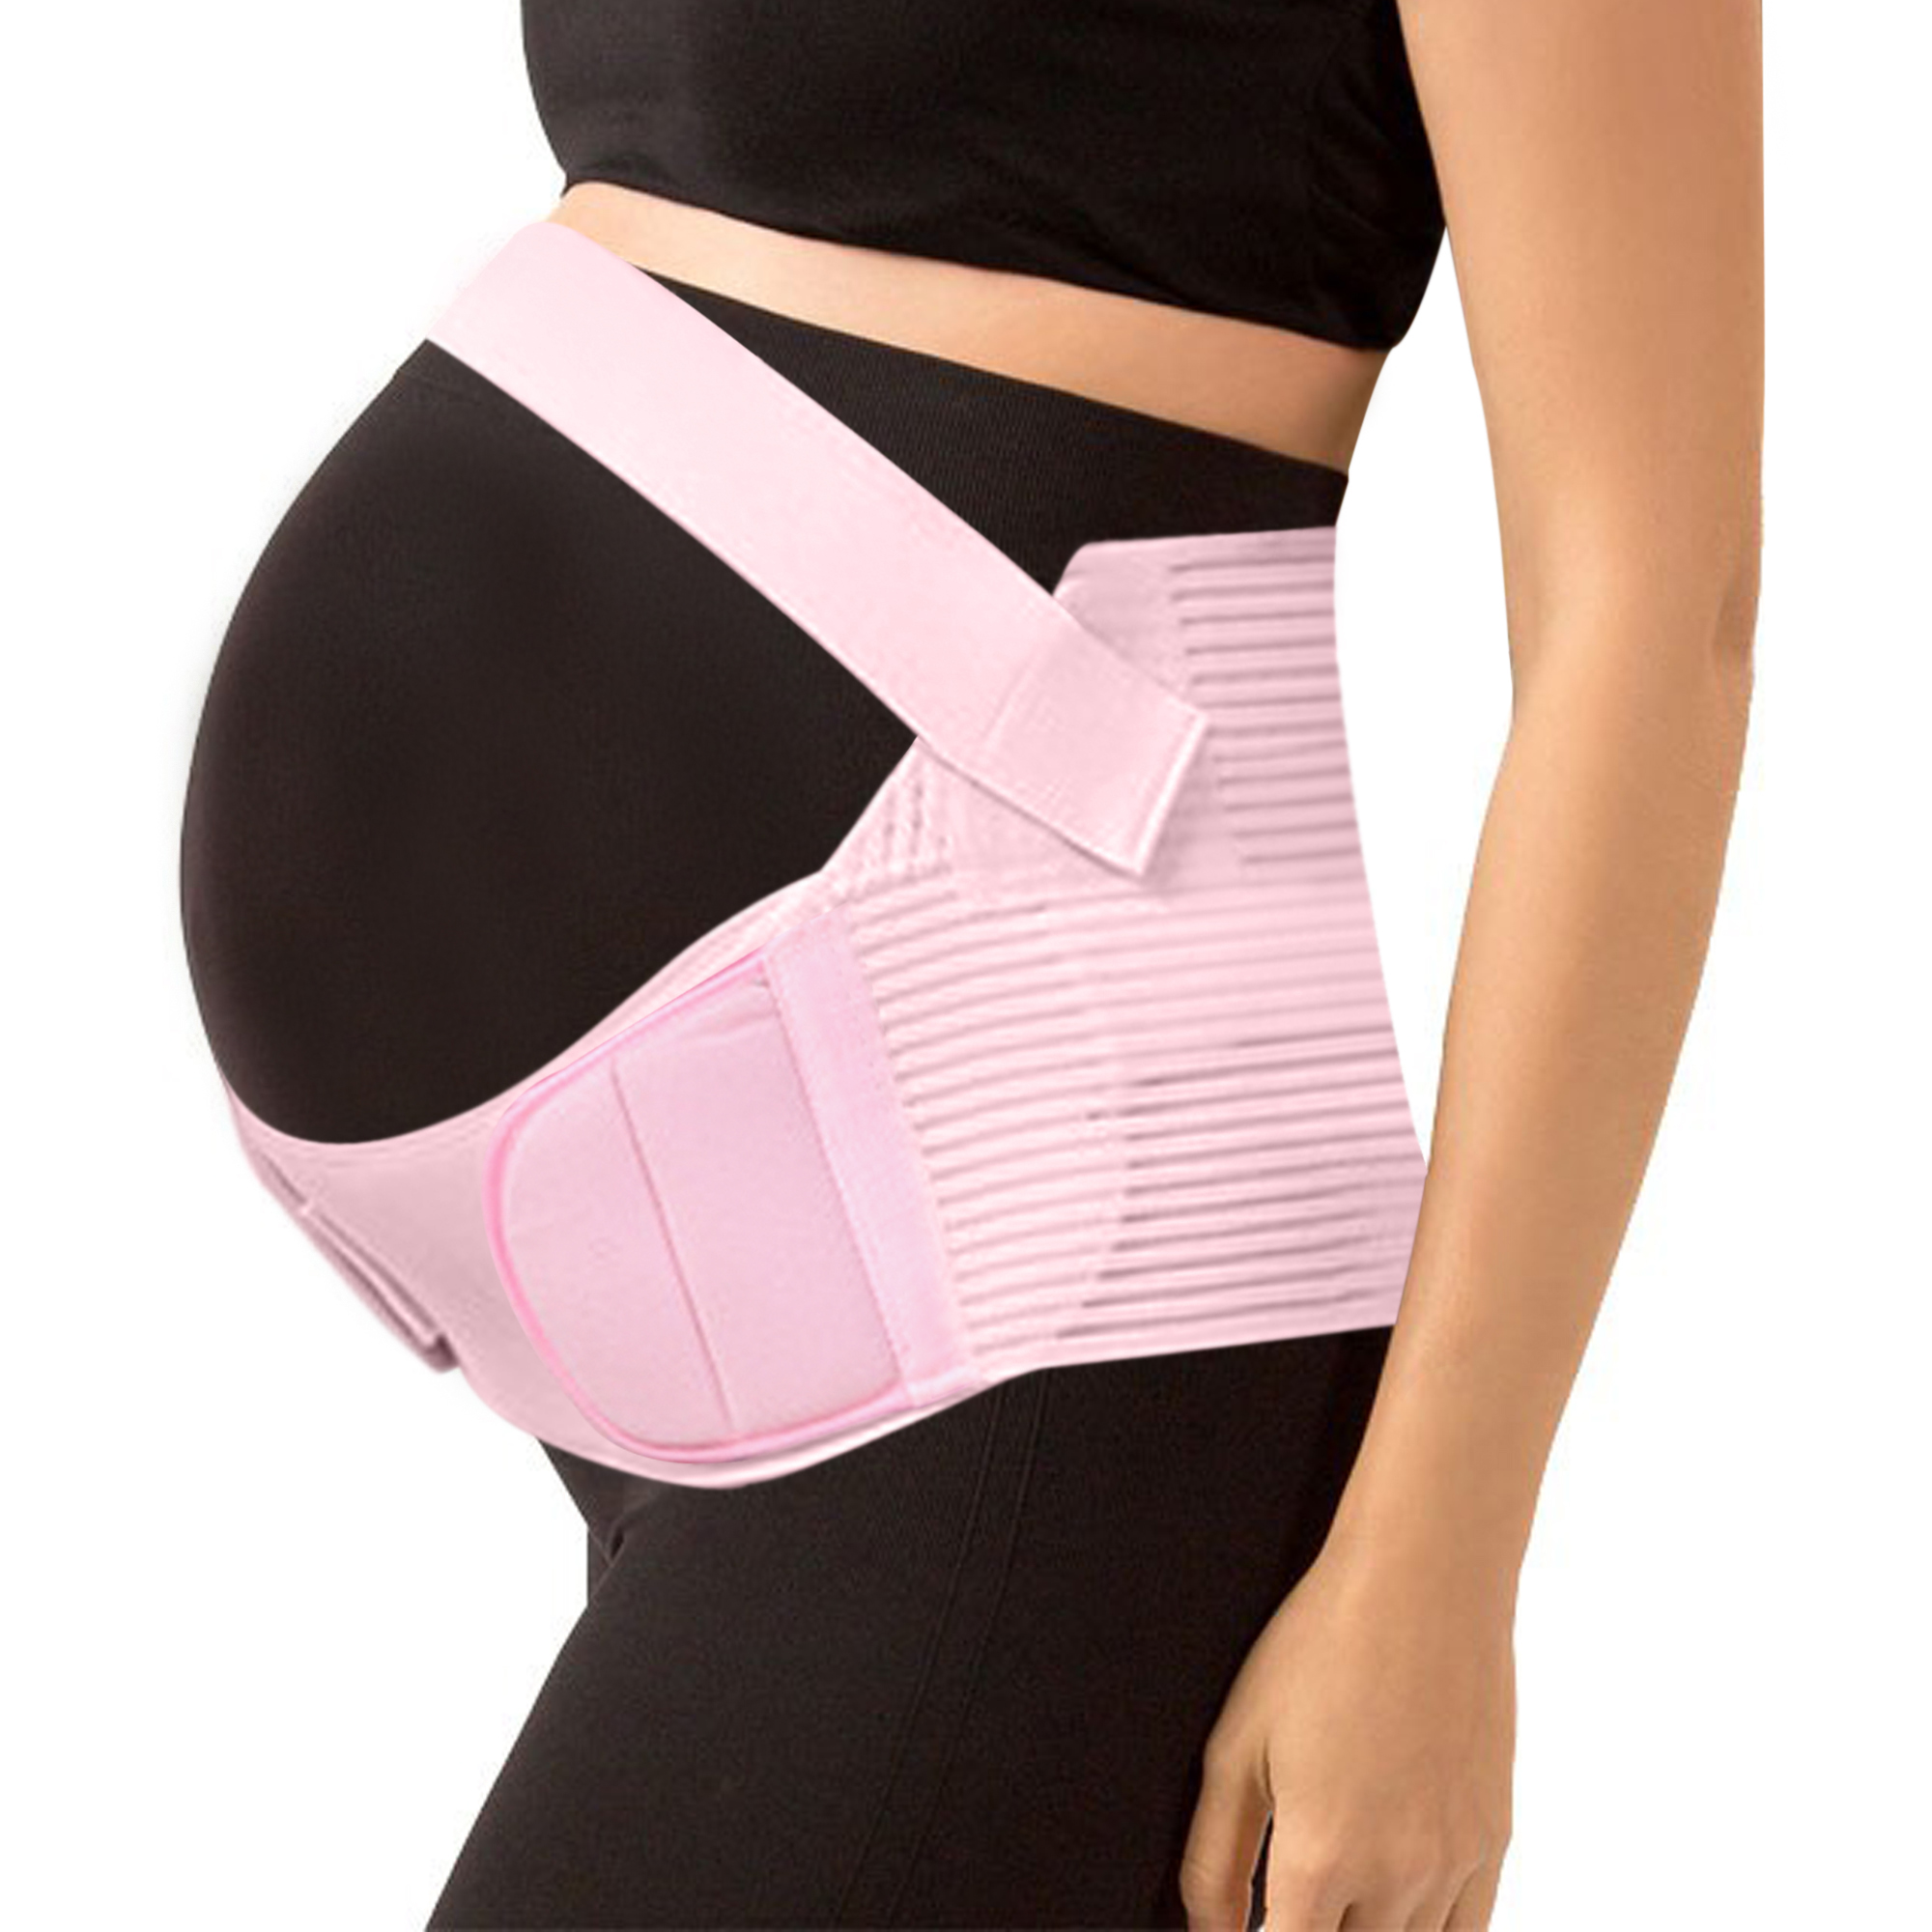 Pink S Size Maternity Antepartum Belt Pregnancy Support Waist Belly Back Brace